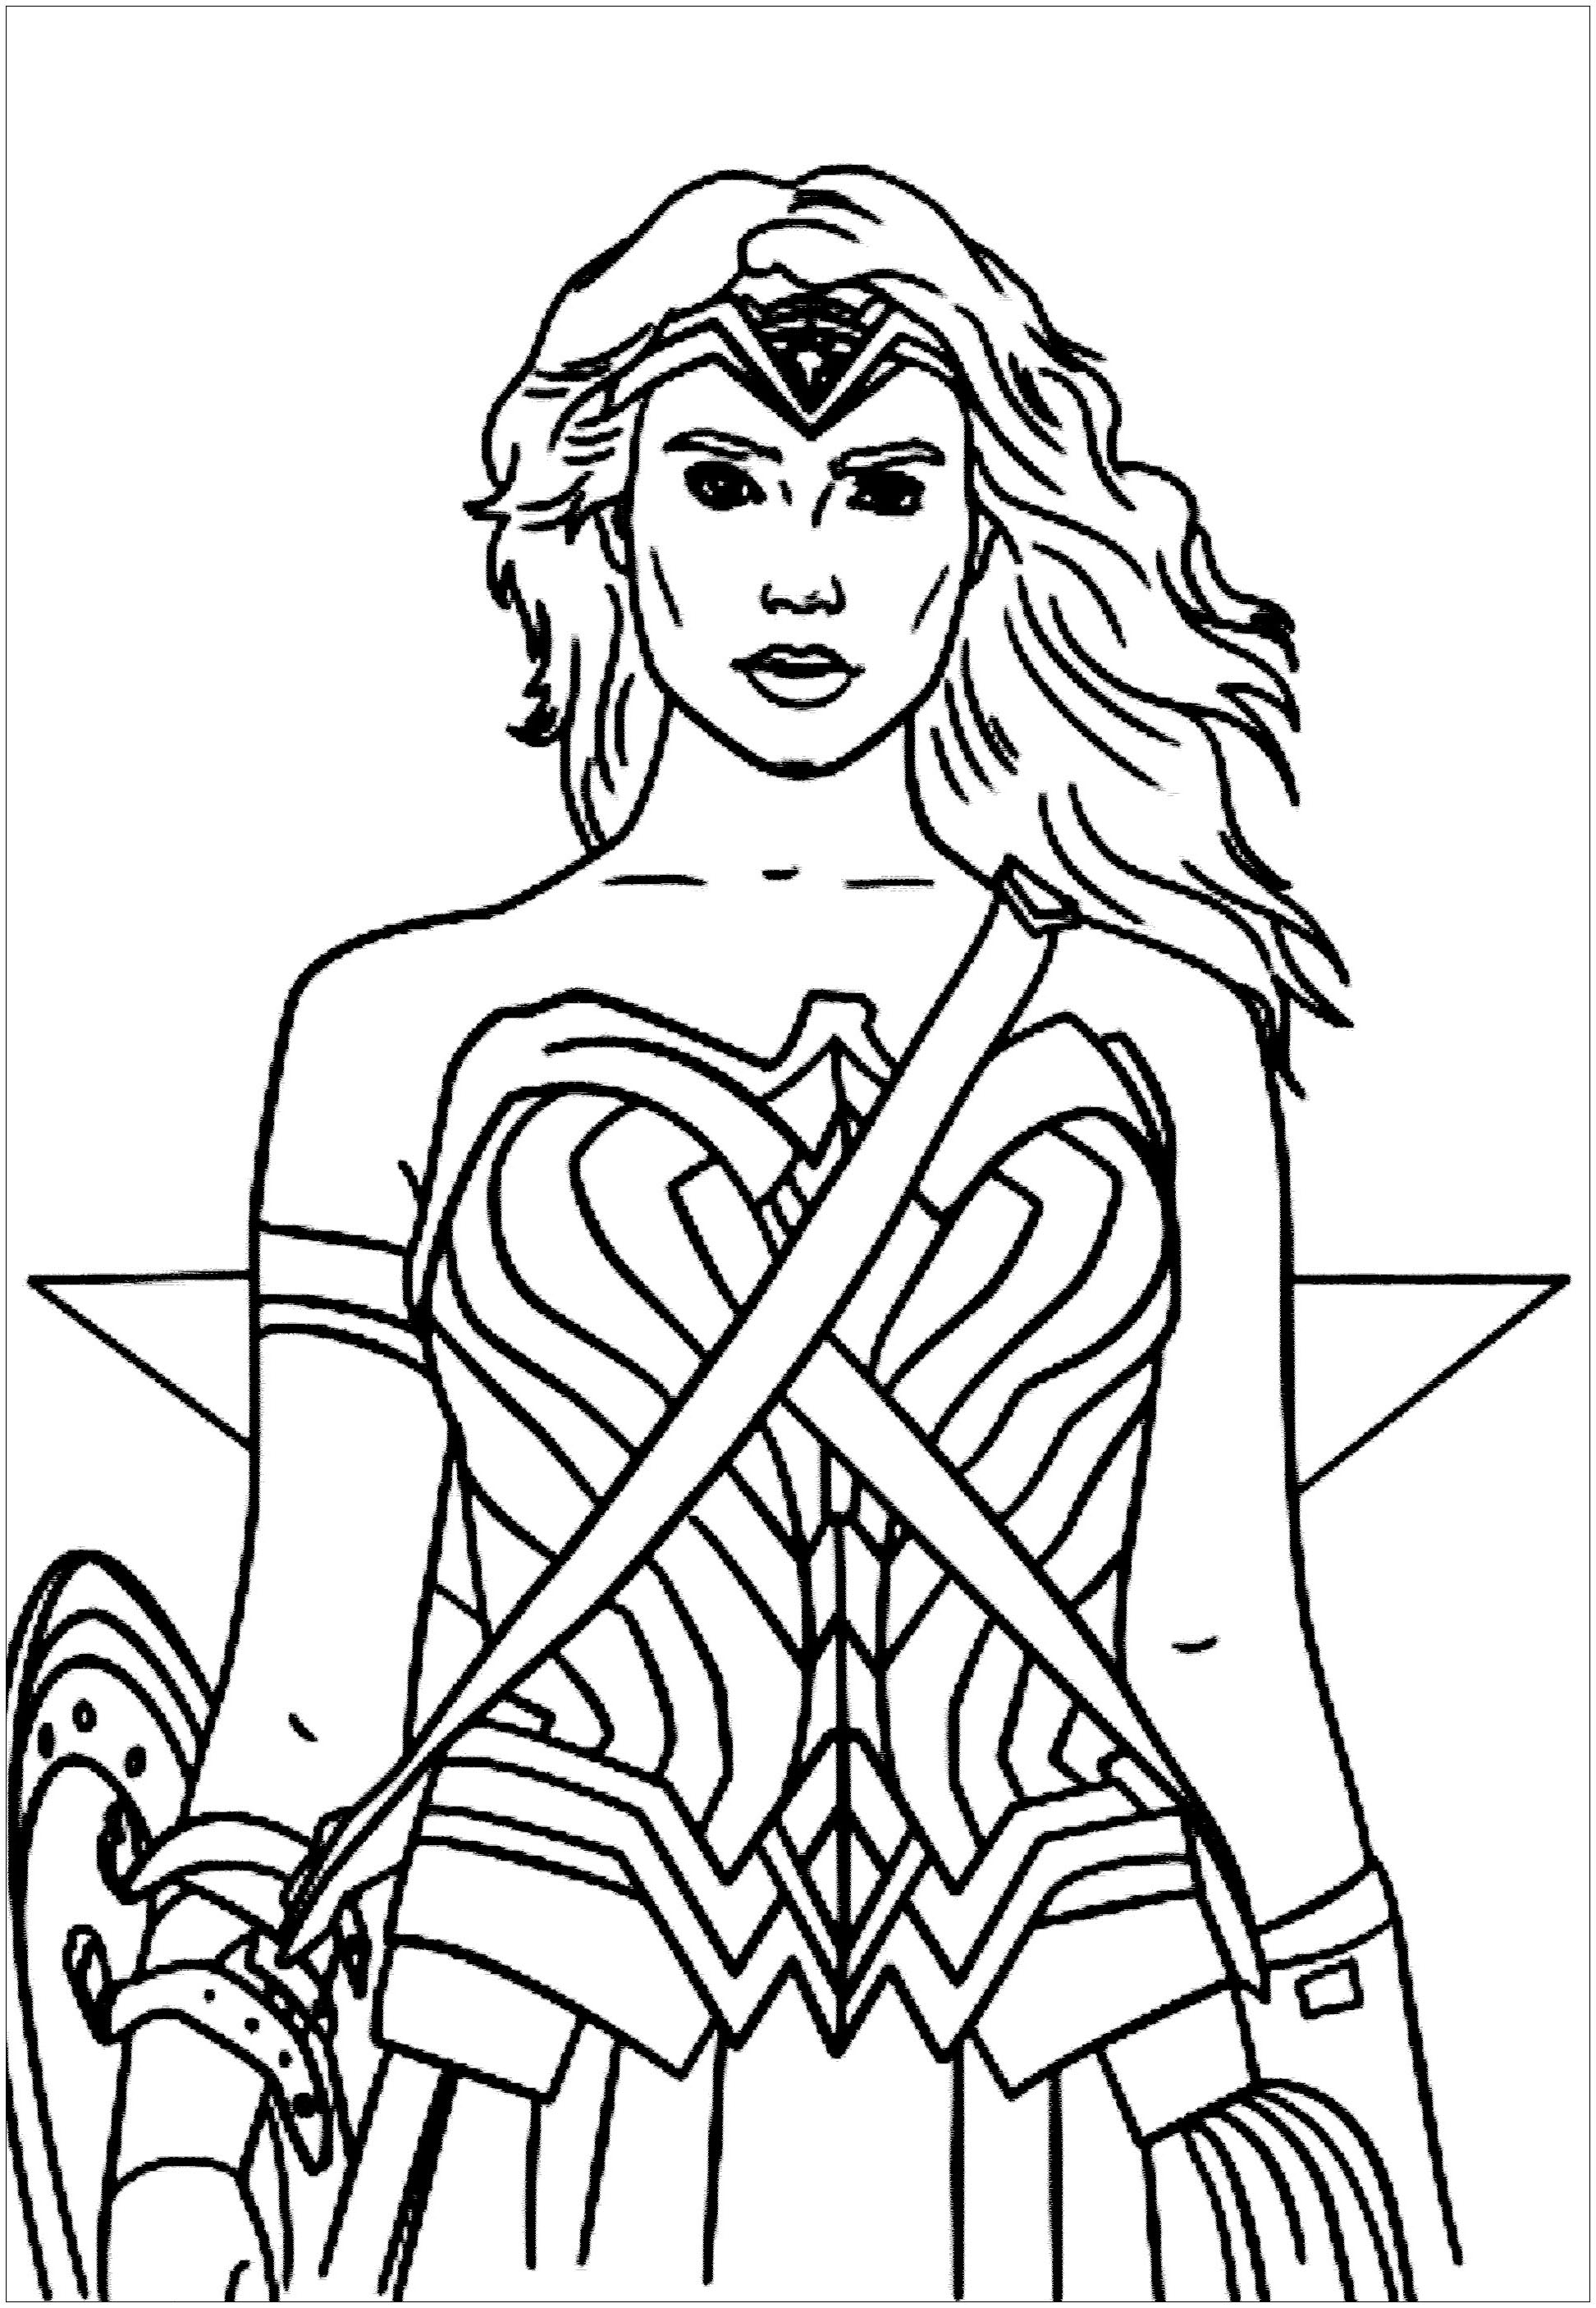 wonder woman cartoon coloring pages wonder woman coloring pages to download and print for free pages coloring wonder cartoon woman